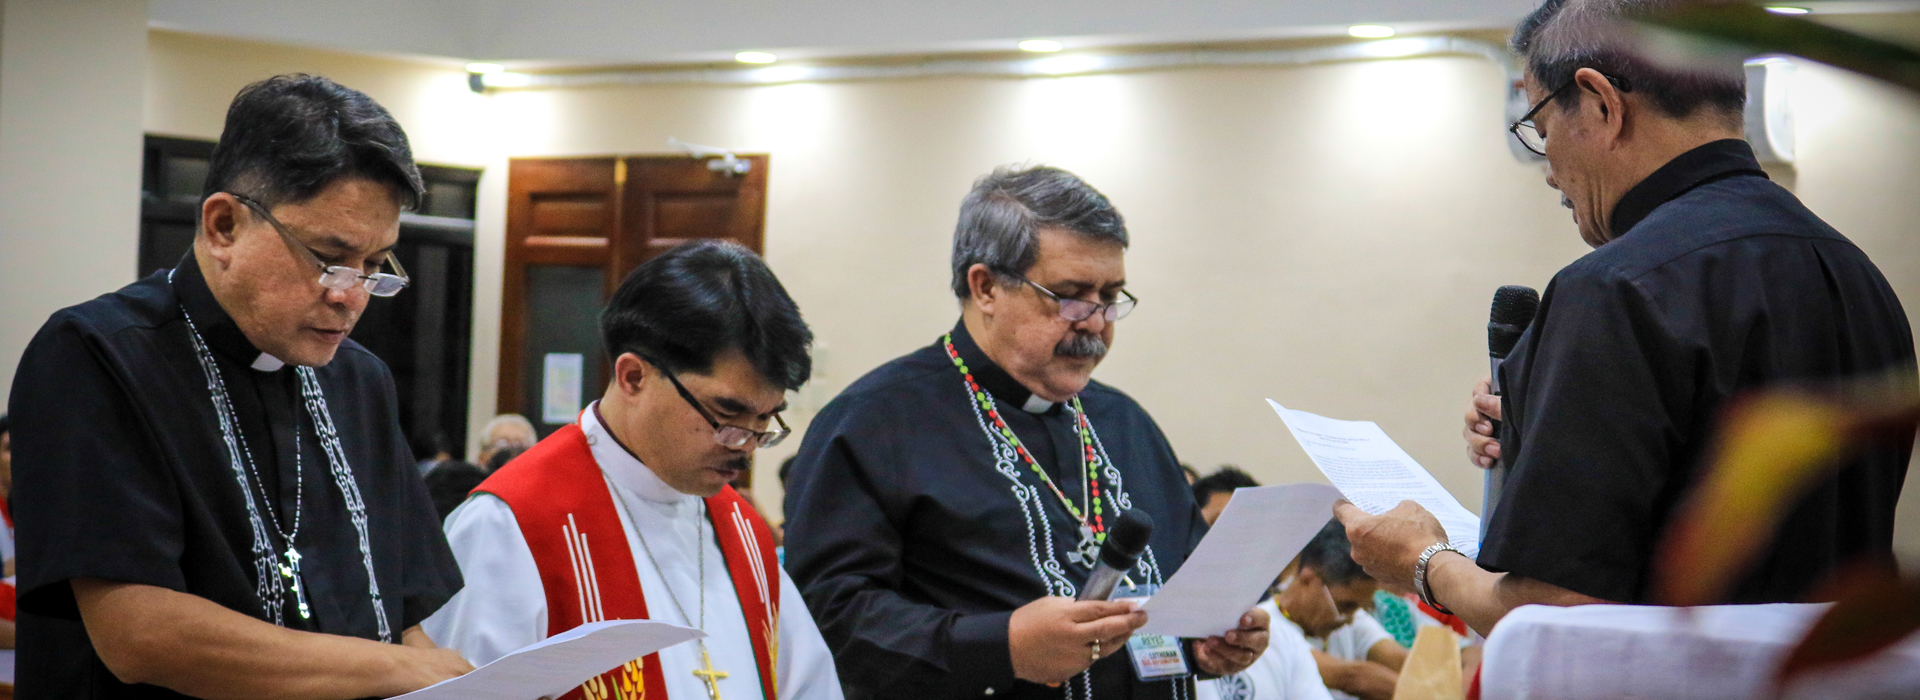 LCP Re-Elects Three Positions during the LCP 24th General Convention